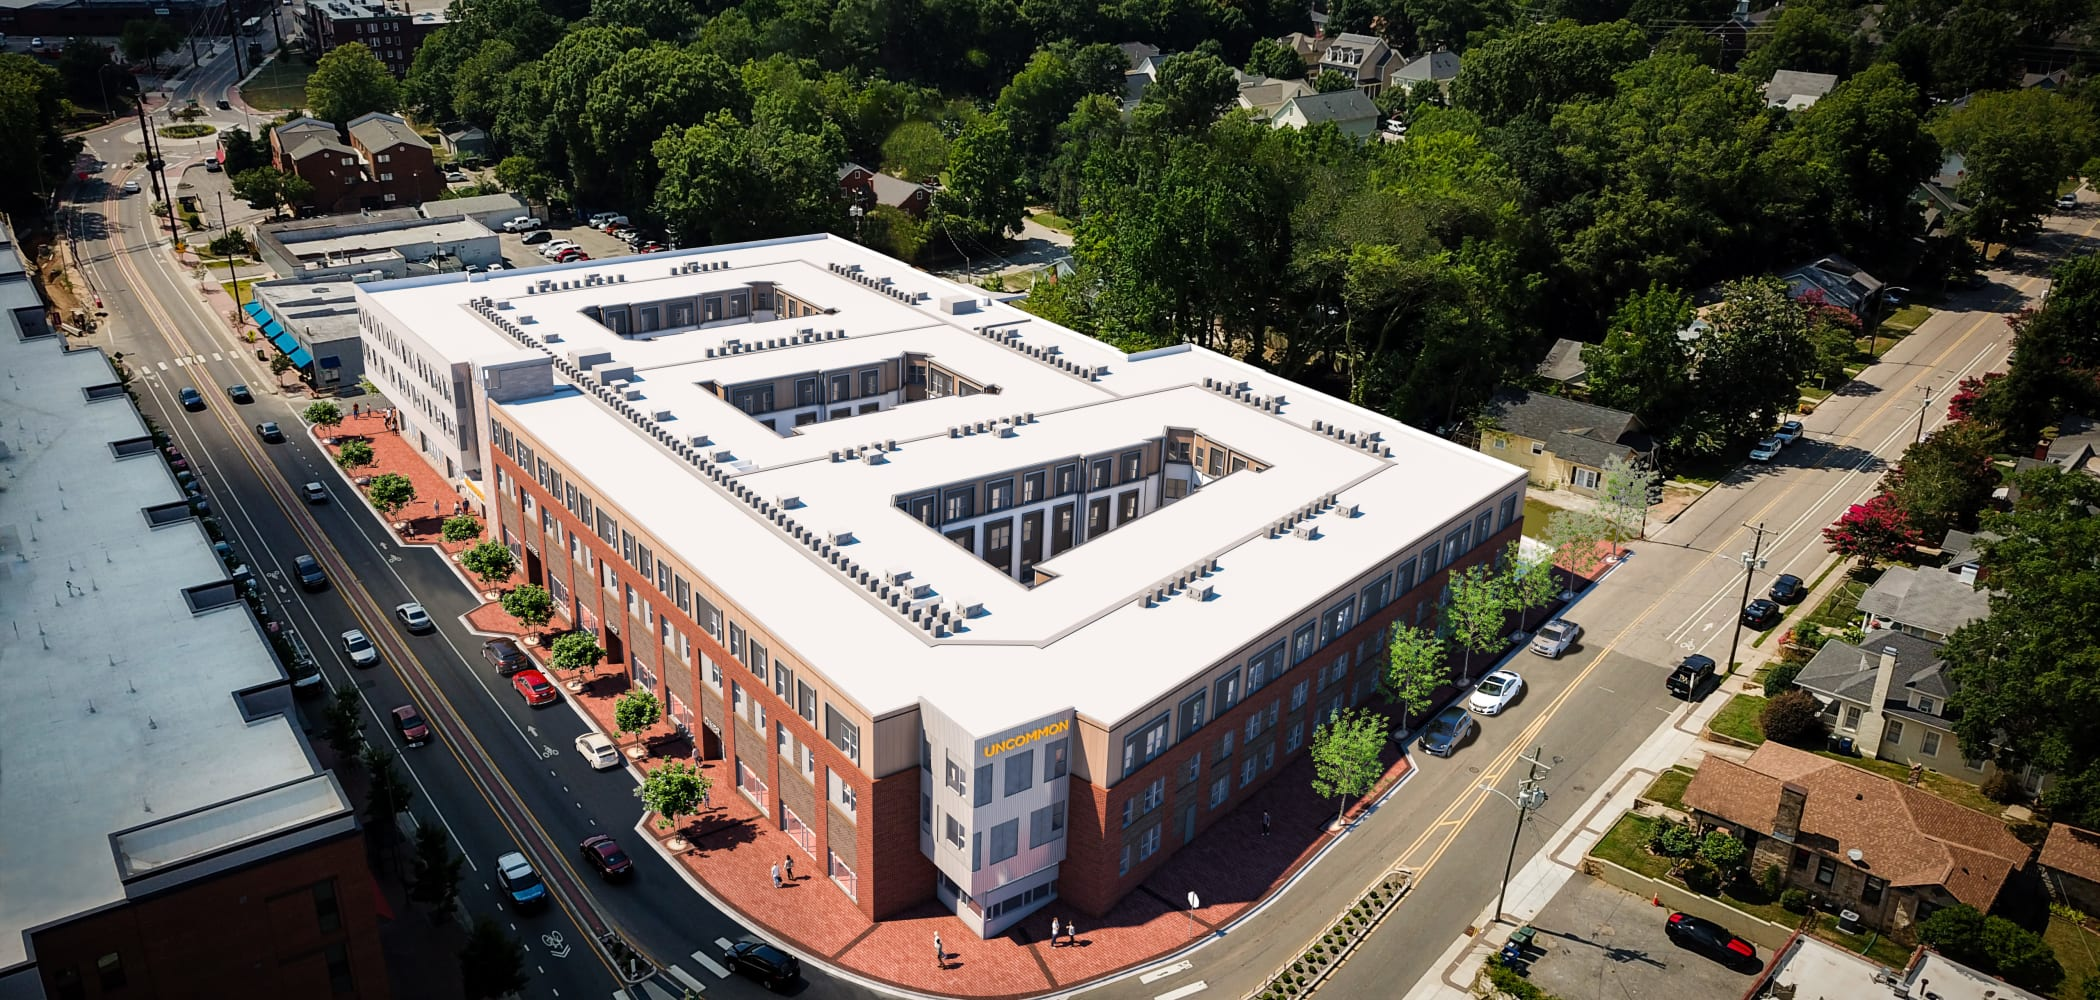 Aerial view of UNCOMMON Raleigh's building in Raleigh, North Carolina